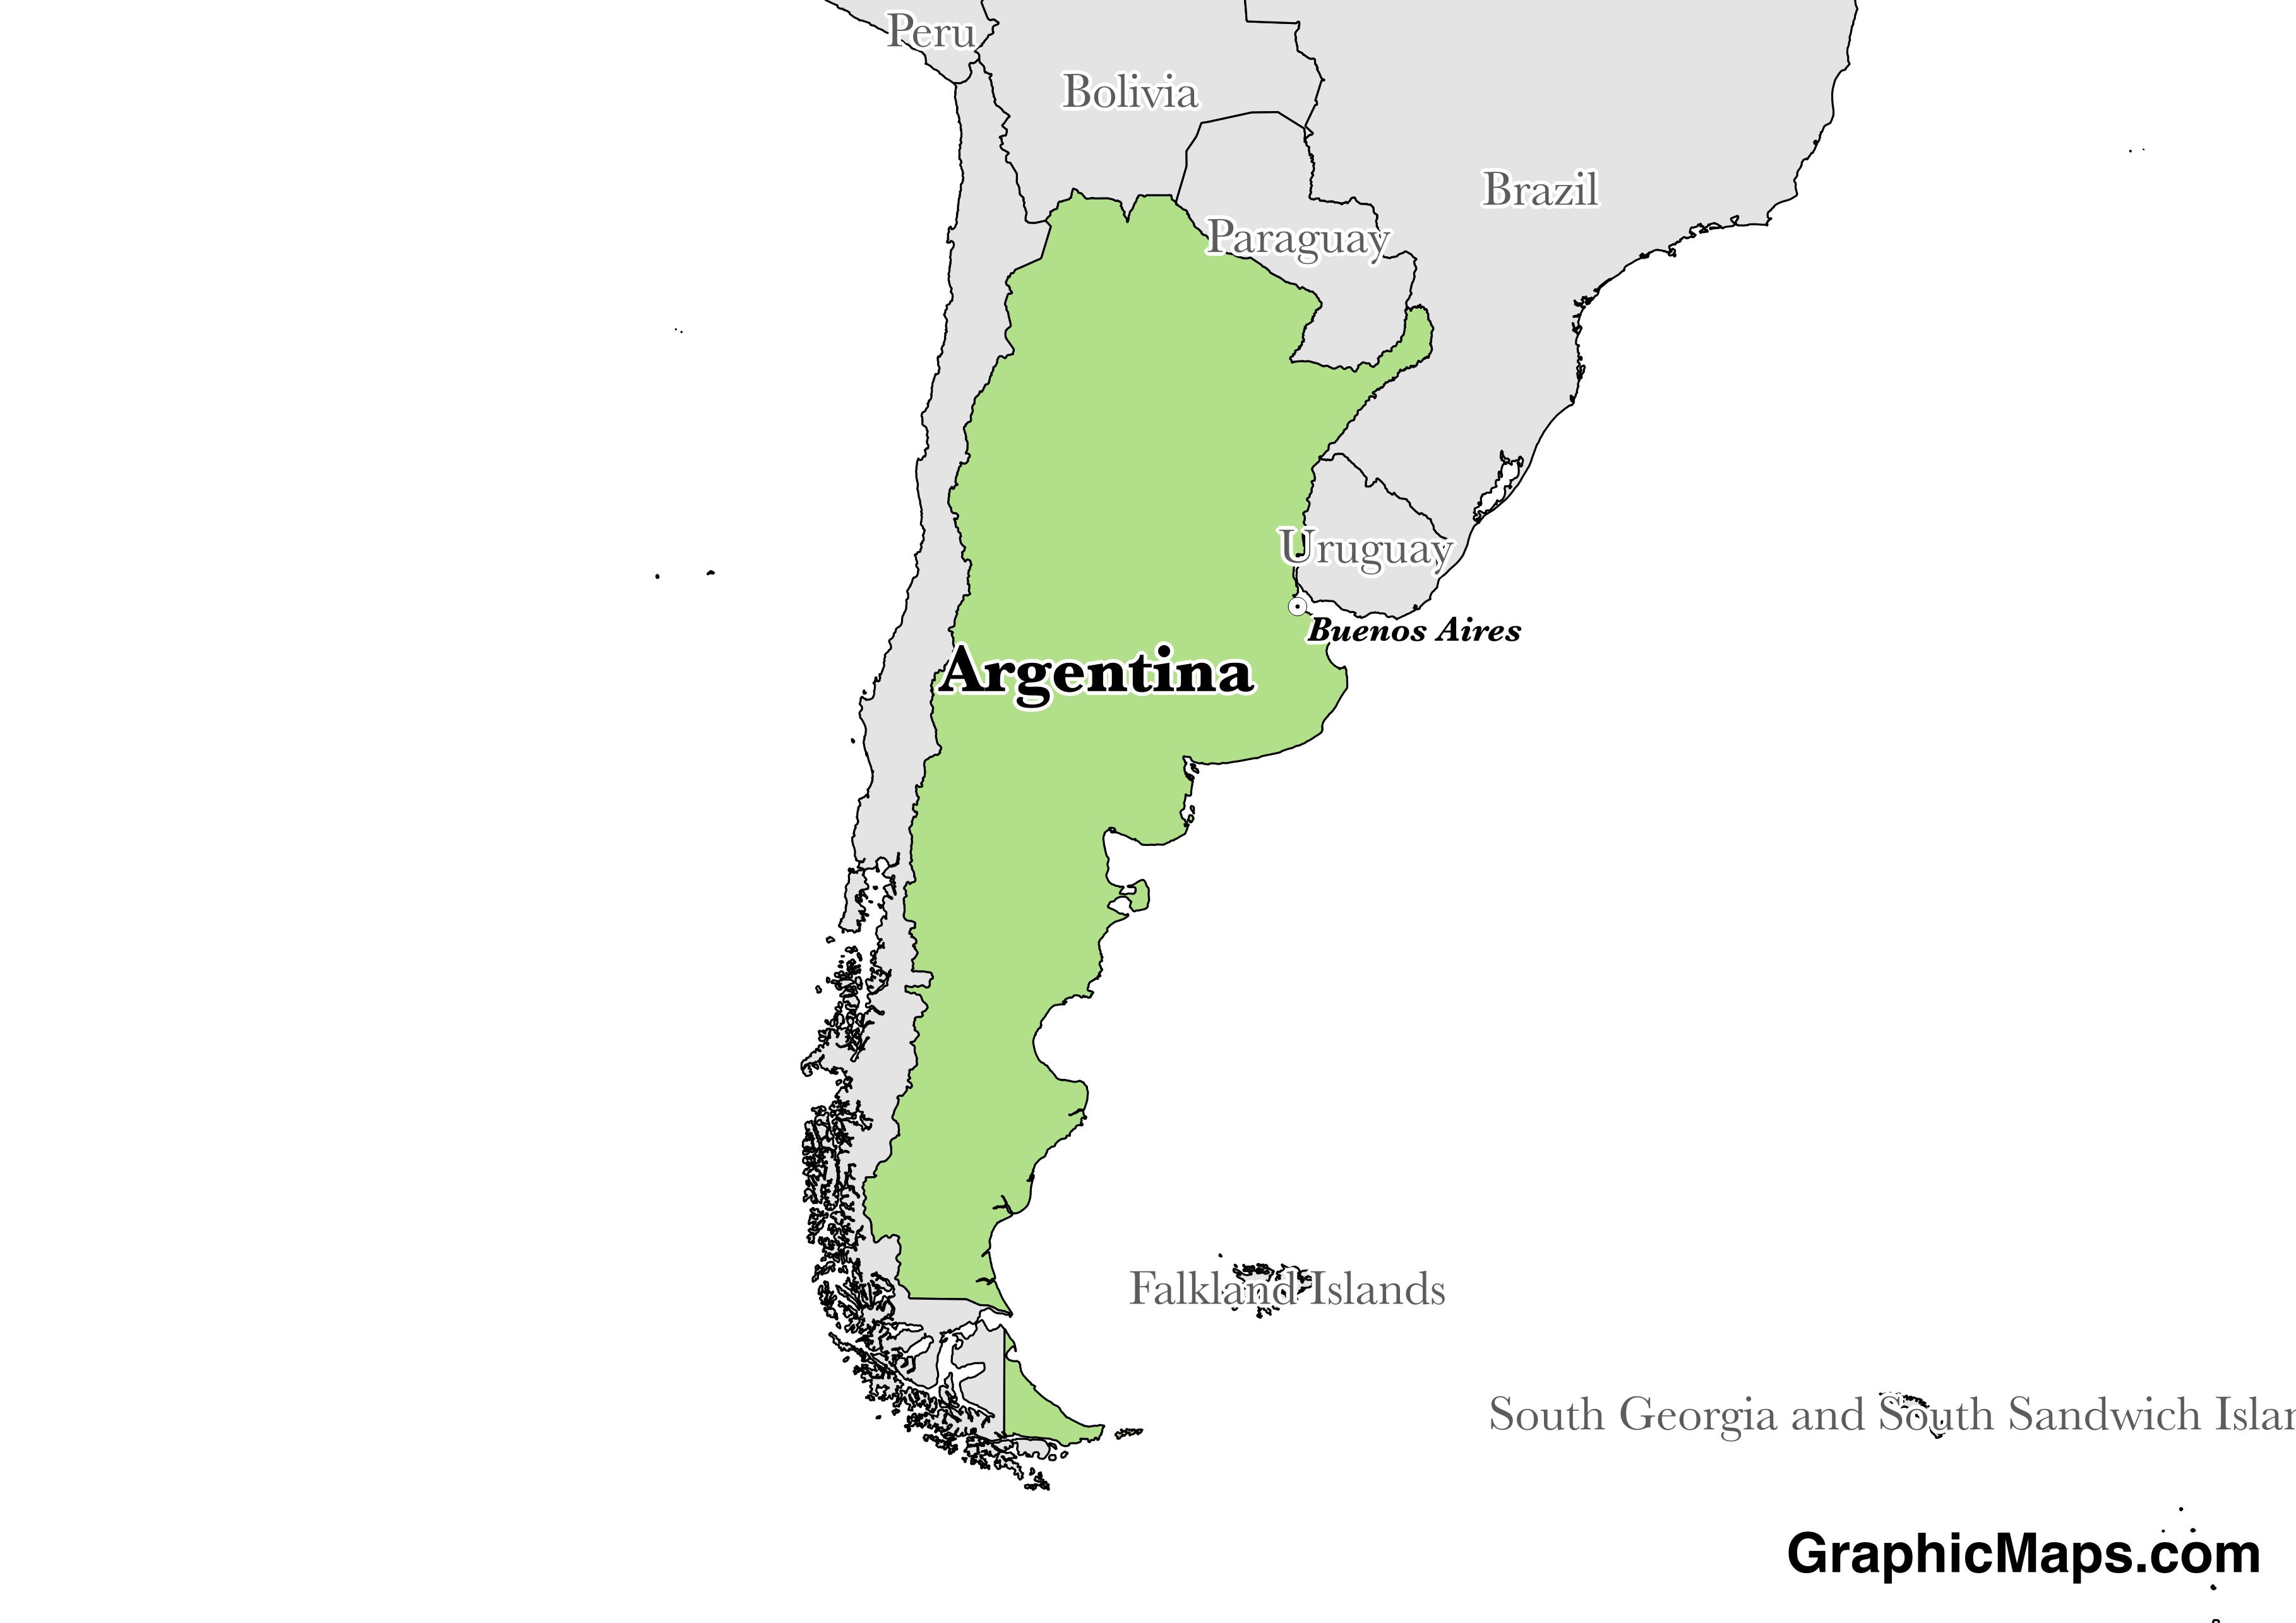 Map showing the location of Argentina